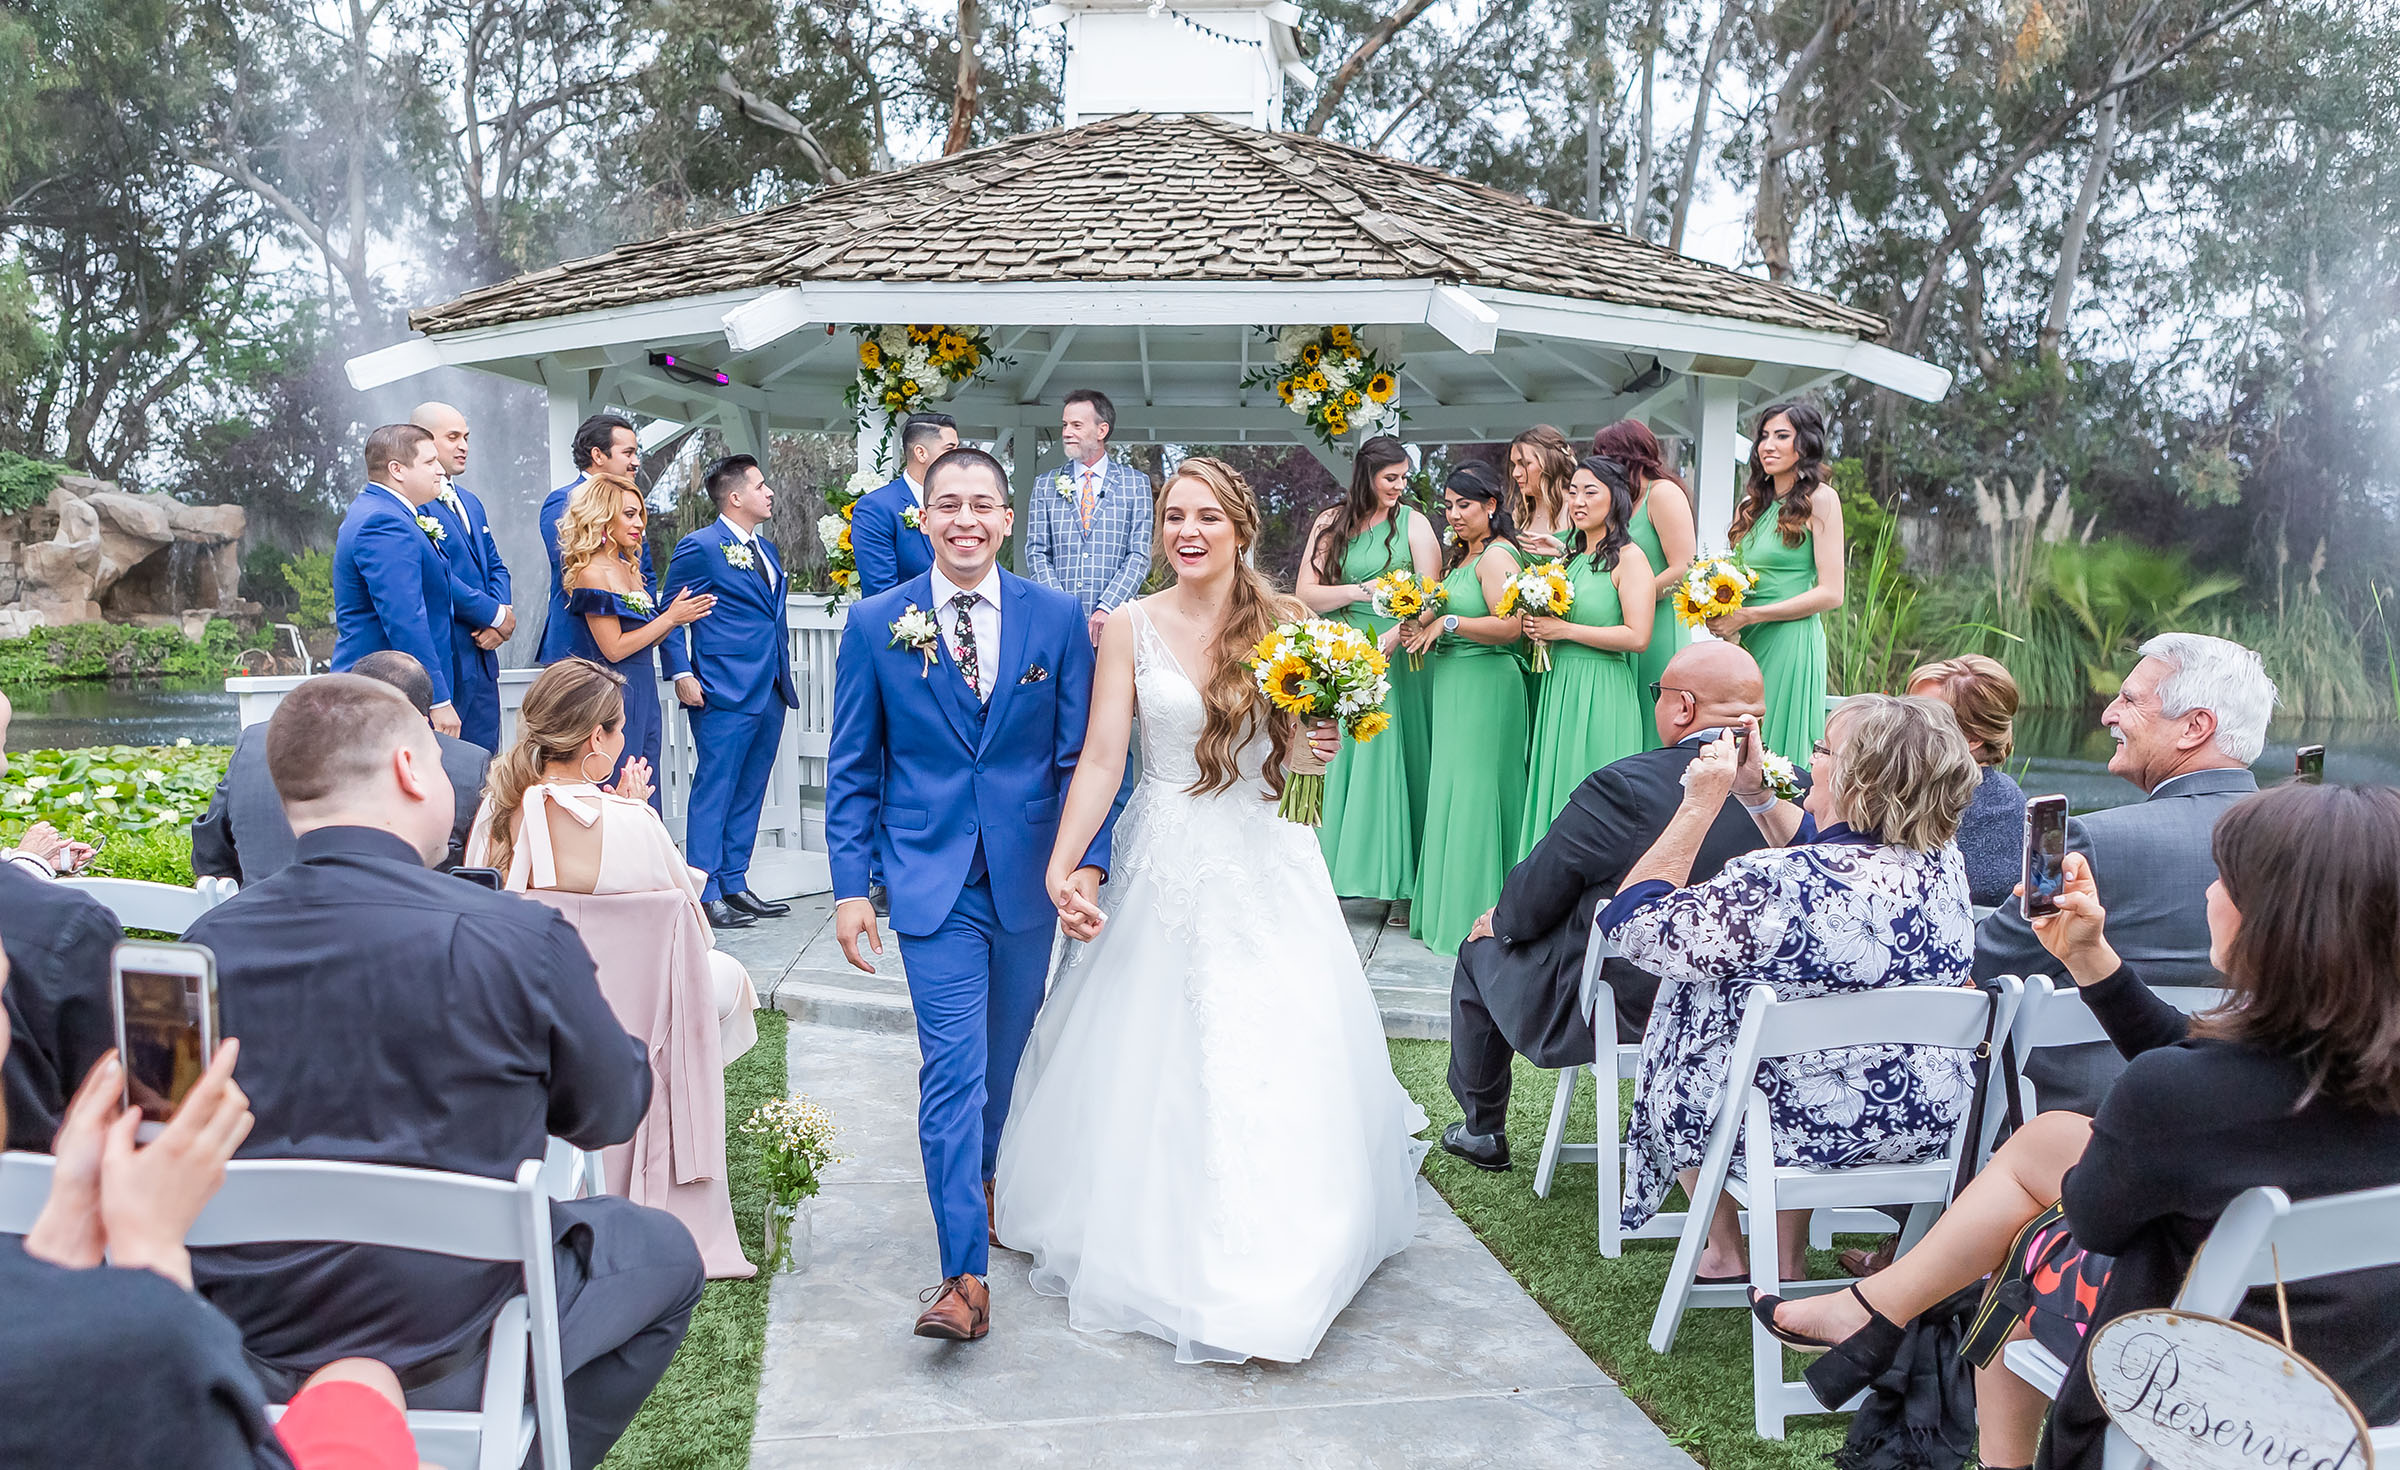 Outdoor ceremony gazebo surrounded by a whimsical garden - Orchard - Menifee, California - Riverside County - Wedgewood Weddings